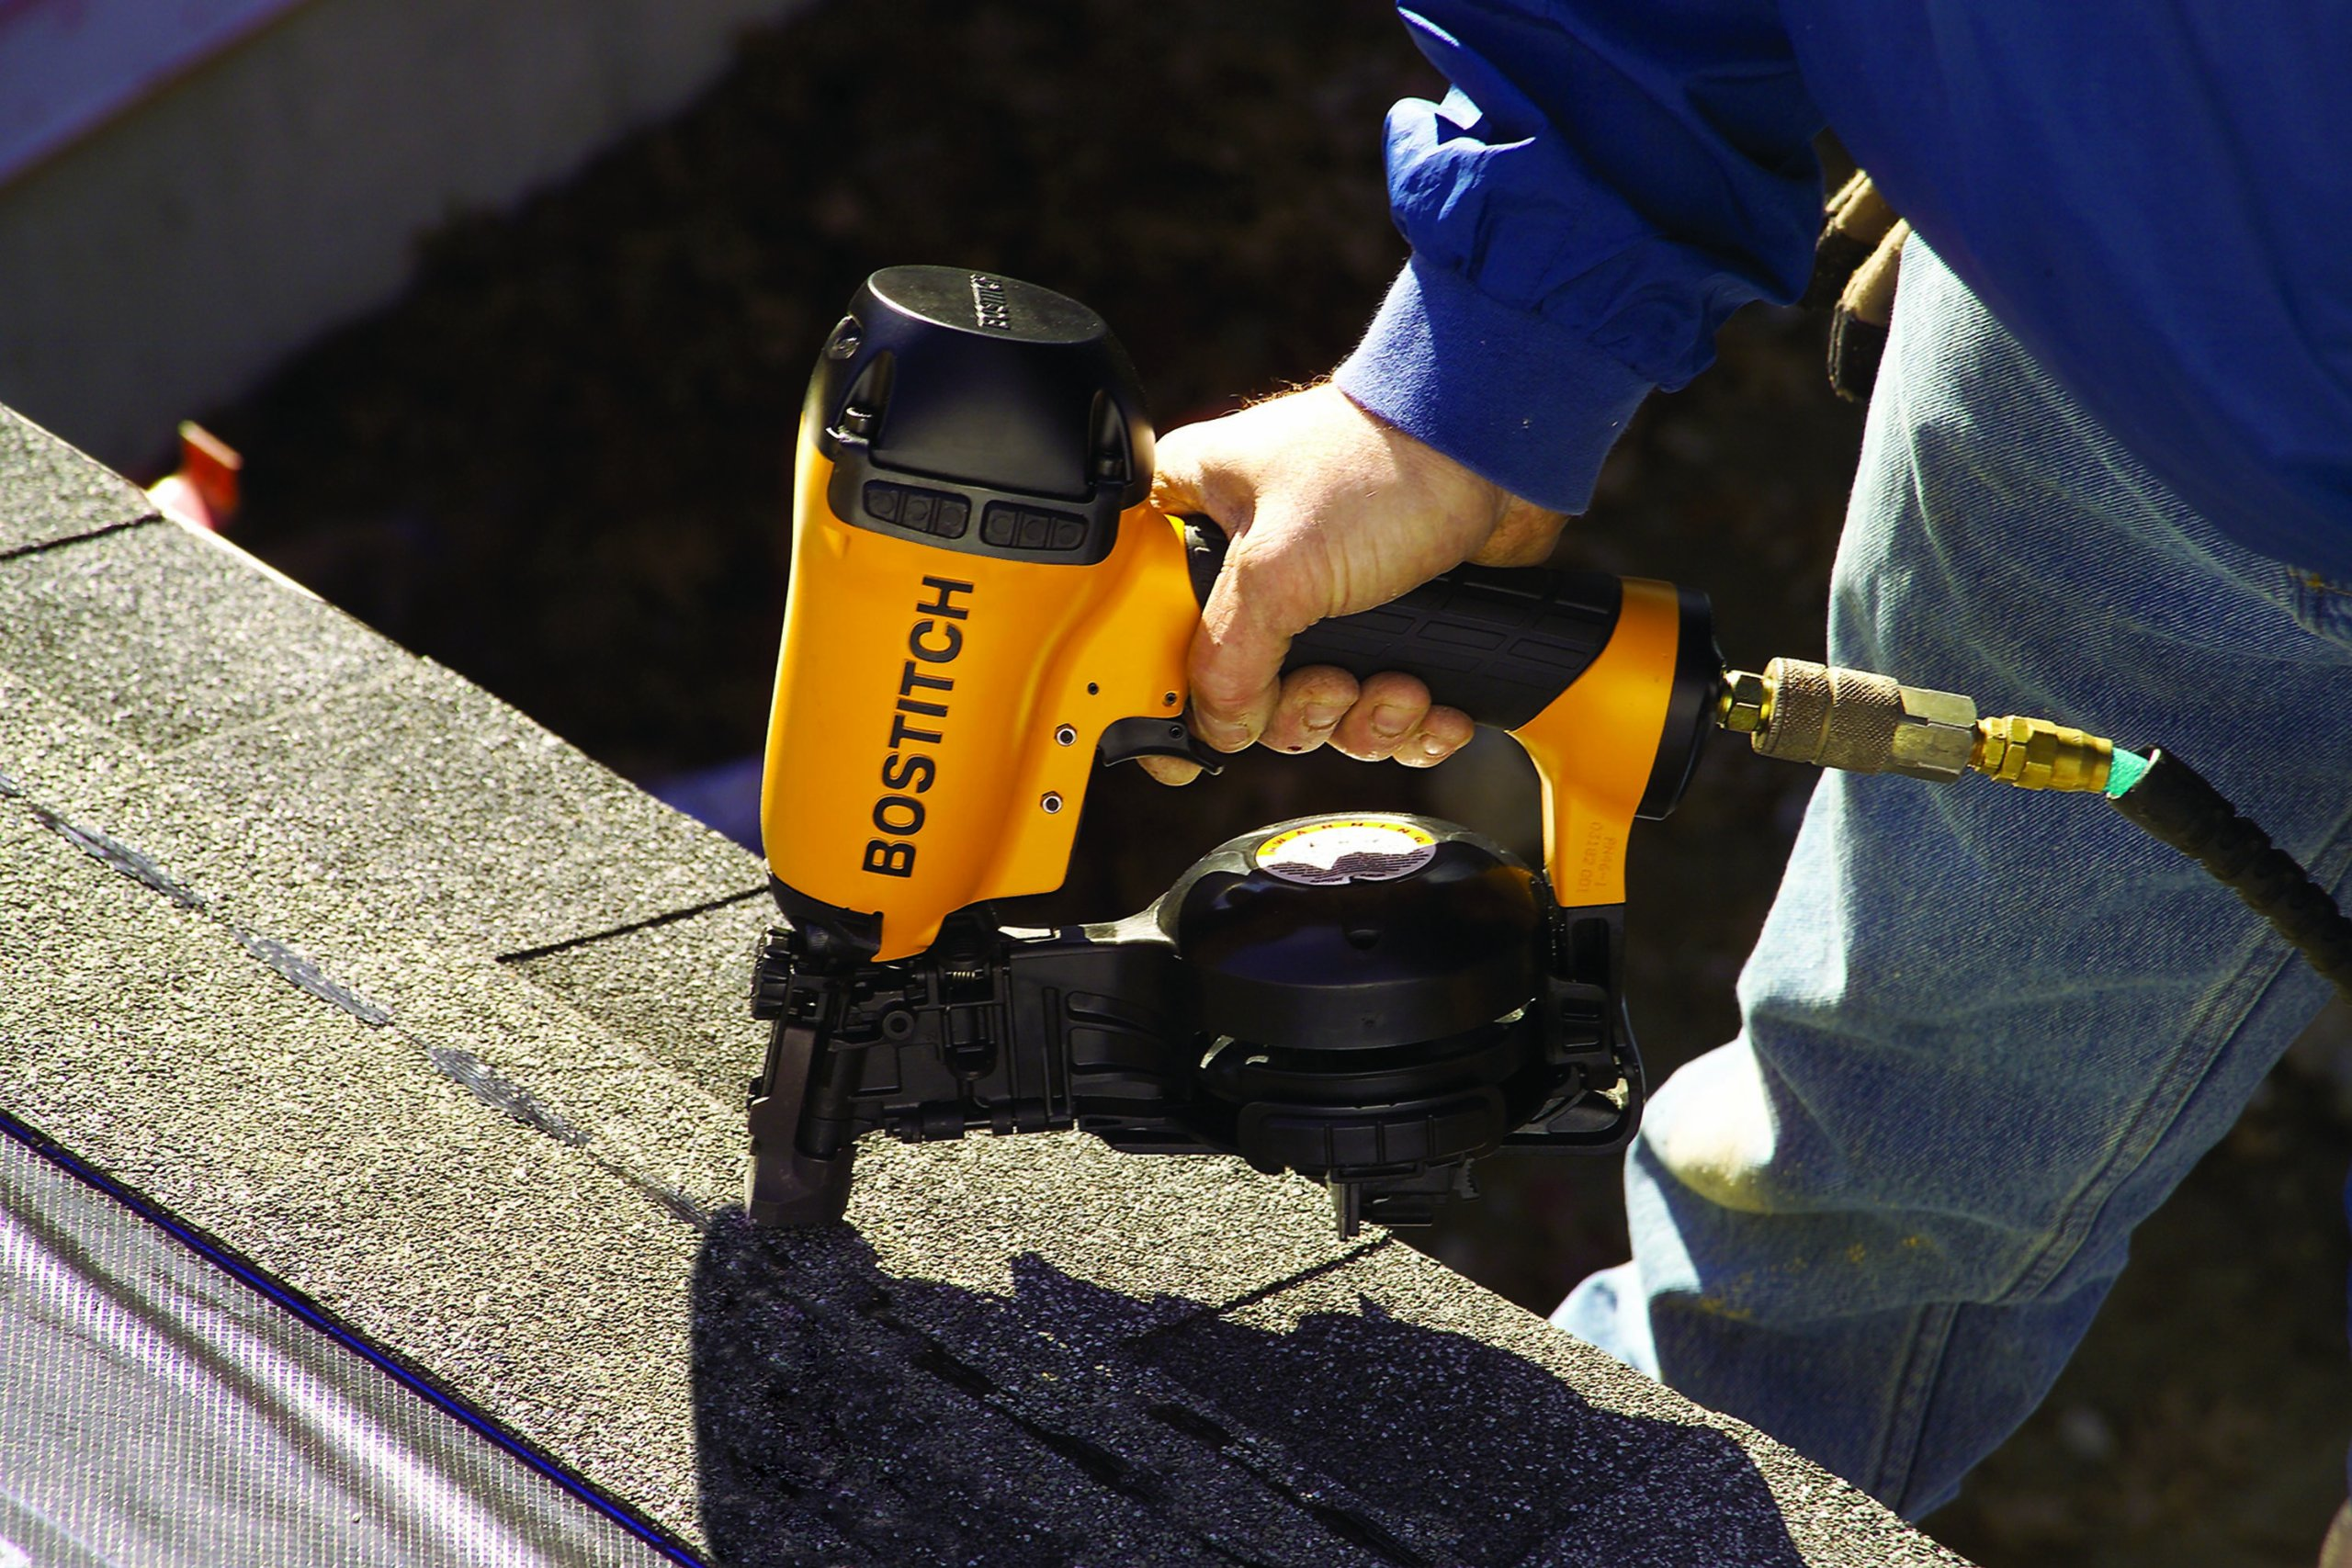 BOSTITCH RN46-1 3/4-Inch to 1-3/4-Inch Coil Roofing Nailer by BOSTITCH